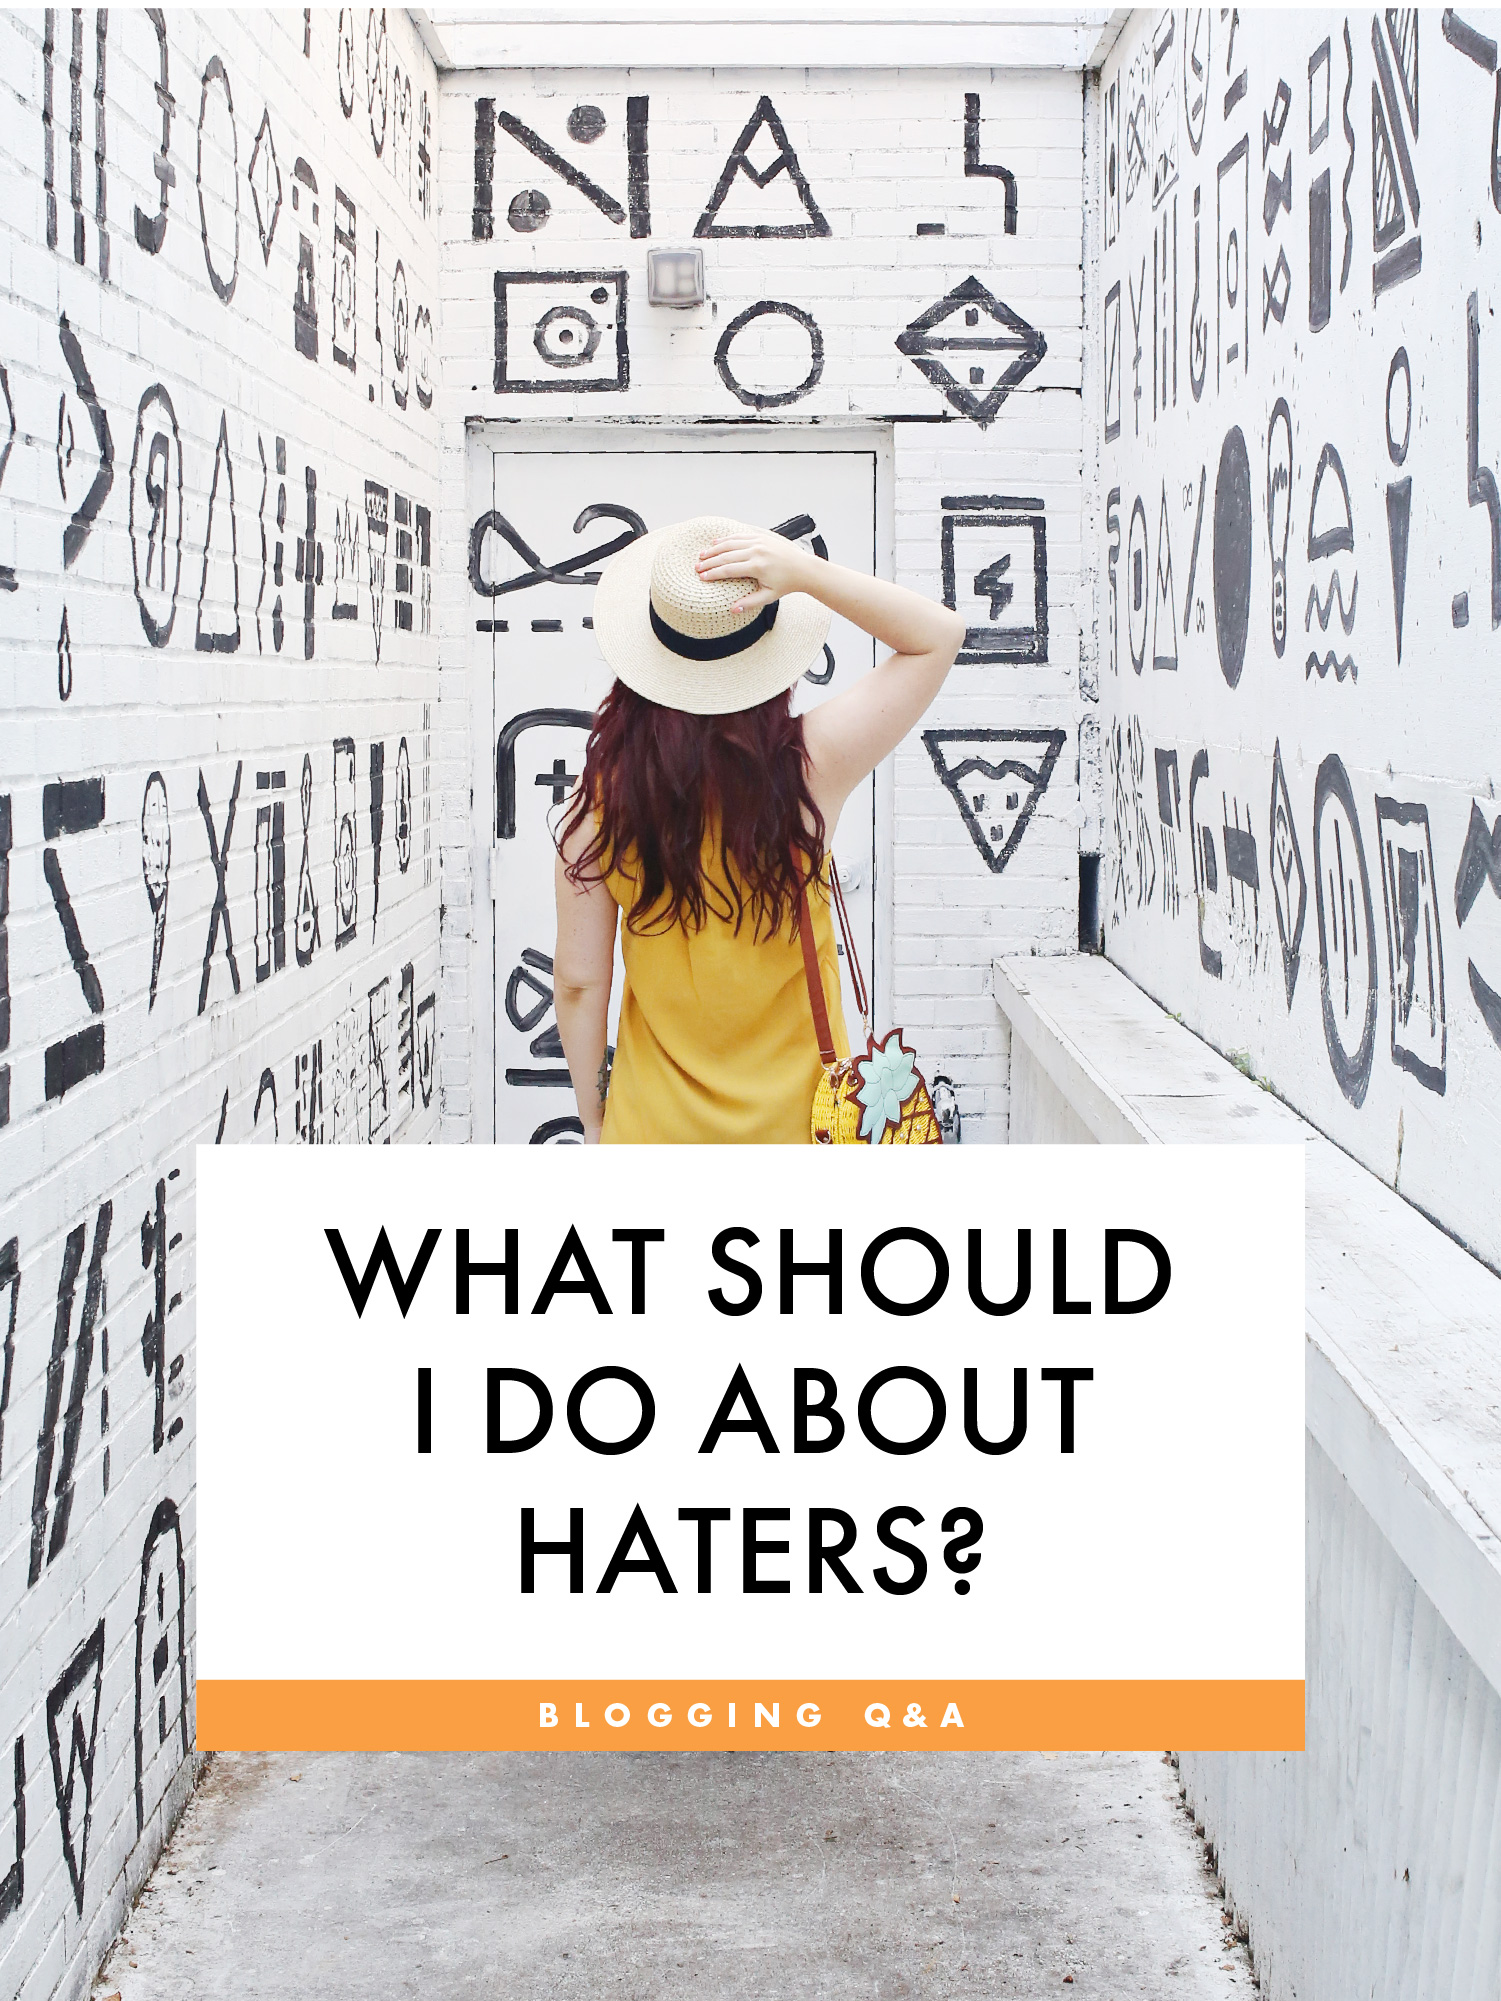 What to do about haters